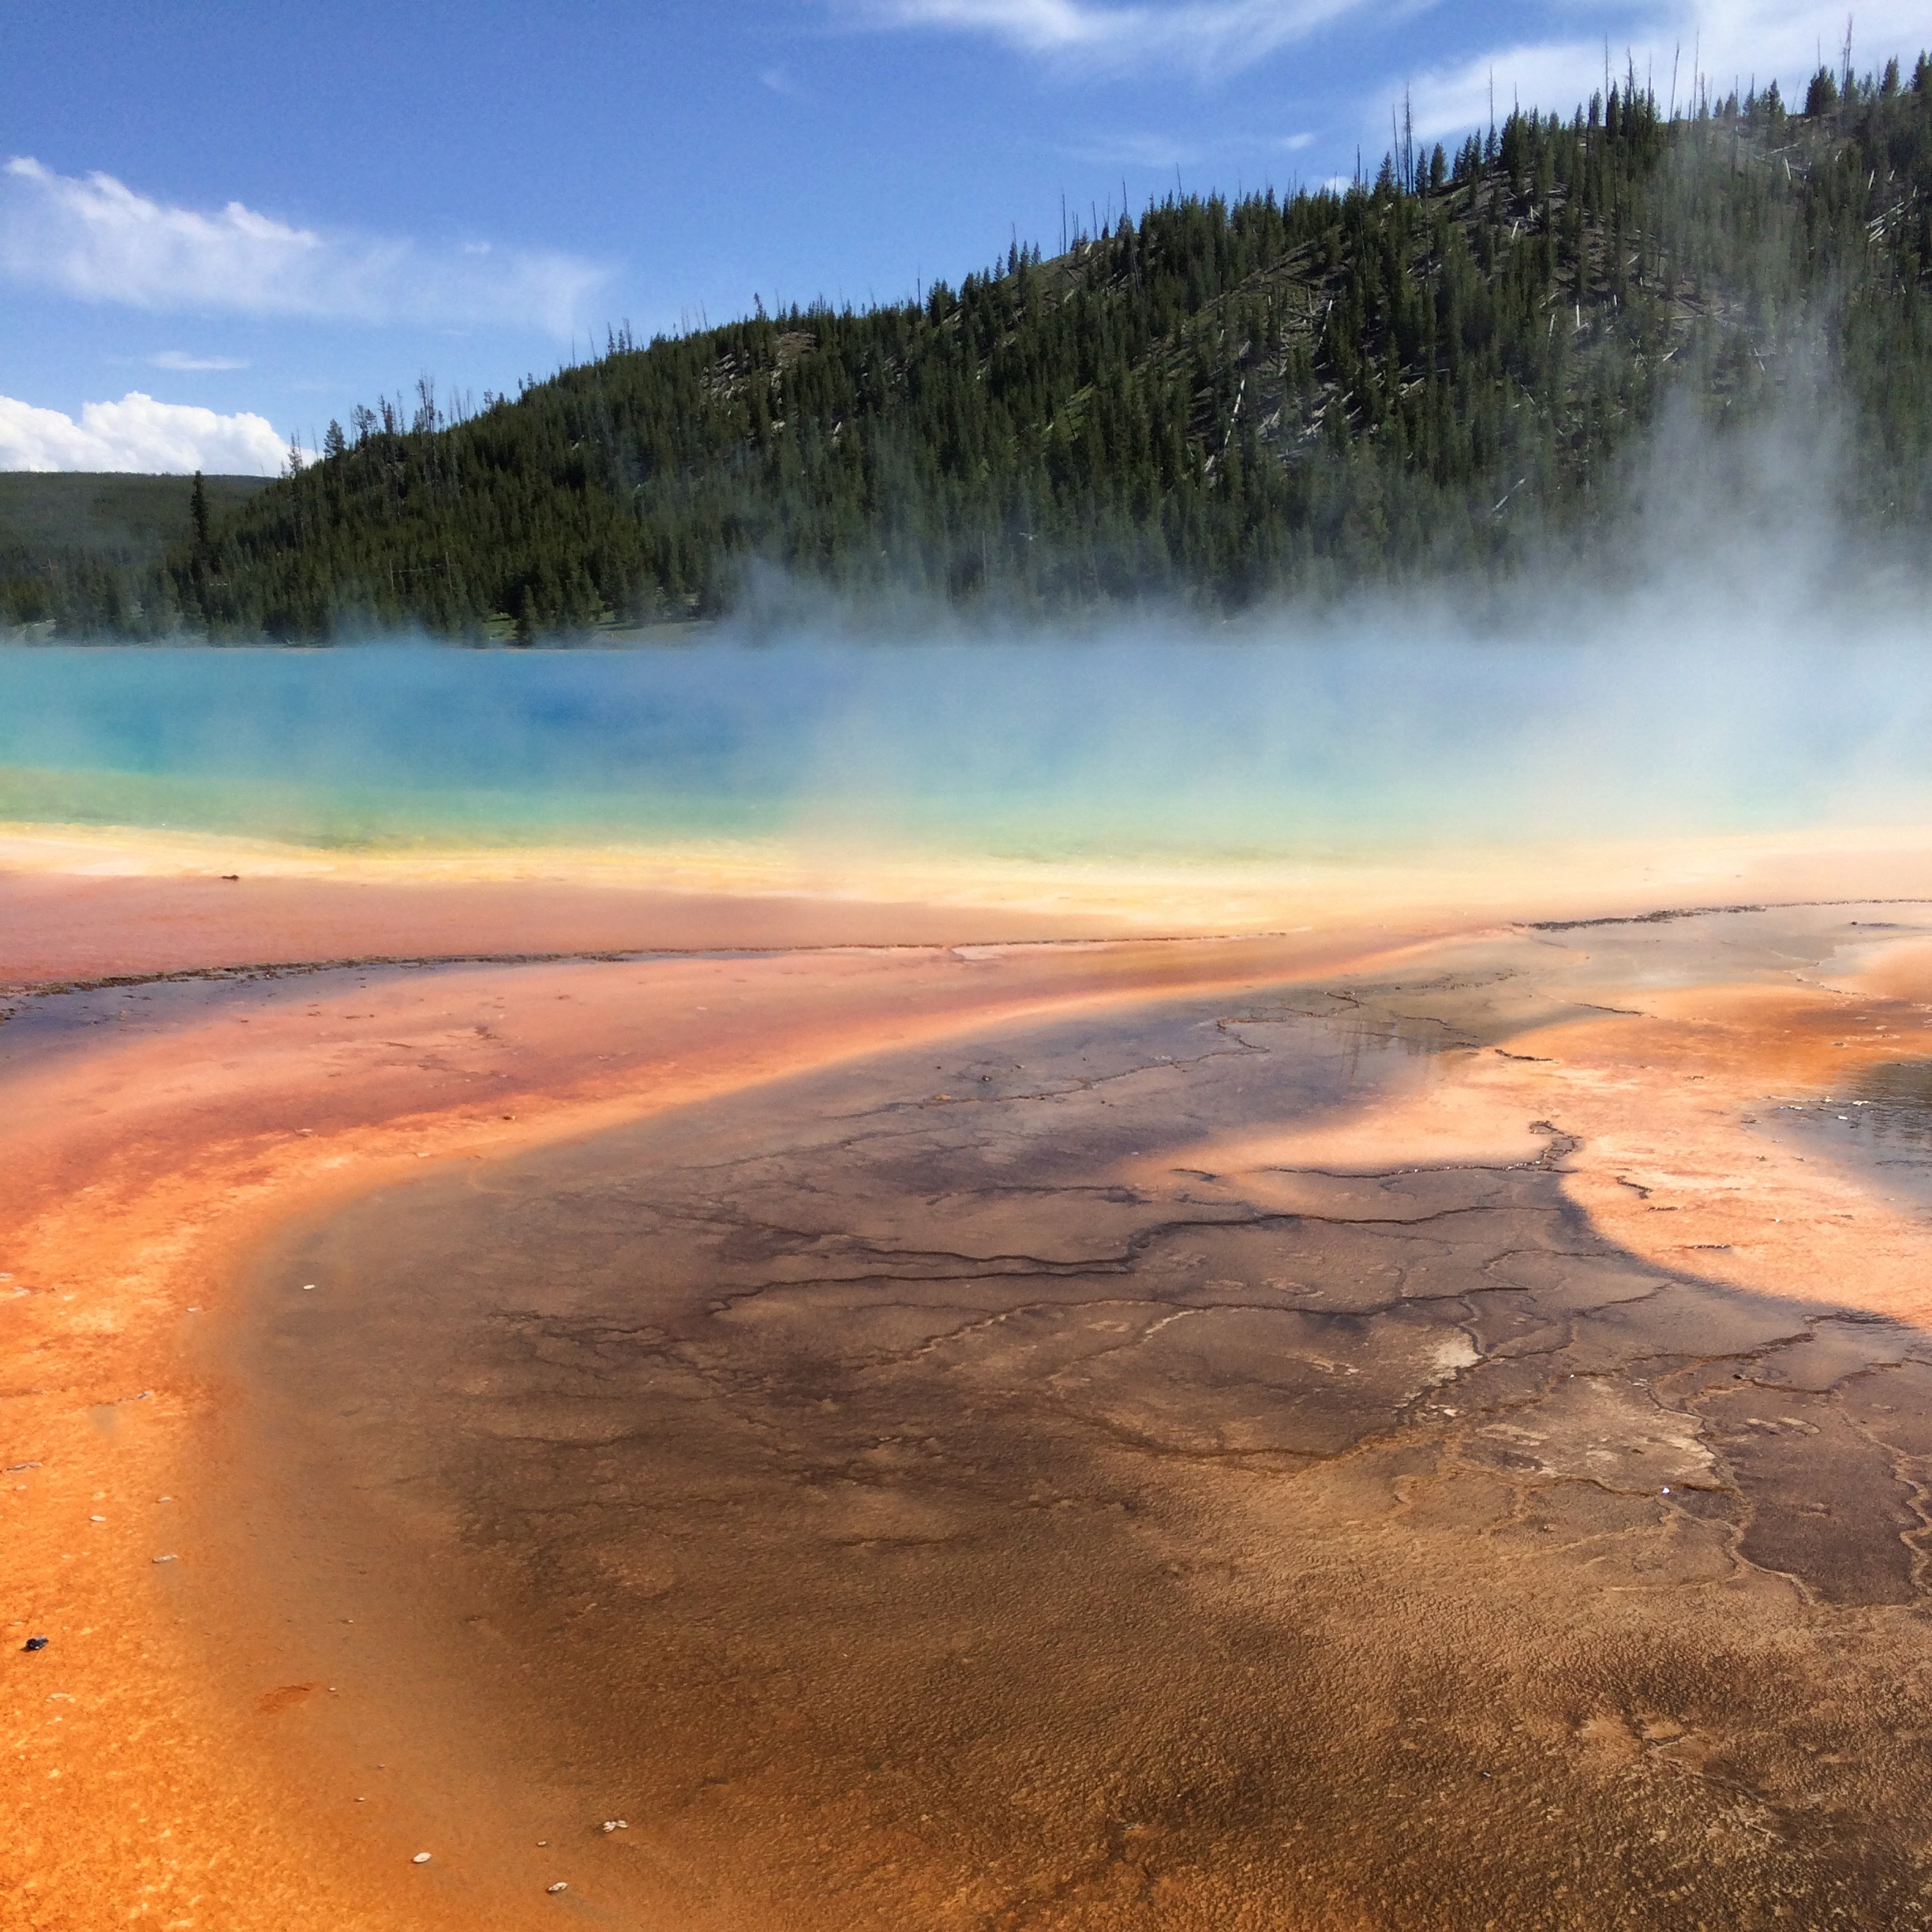 hot springs with trees in background (The Grand Prismatic Spring in Yellowstone National Park)